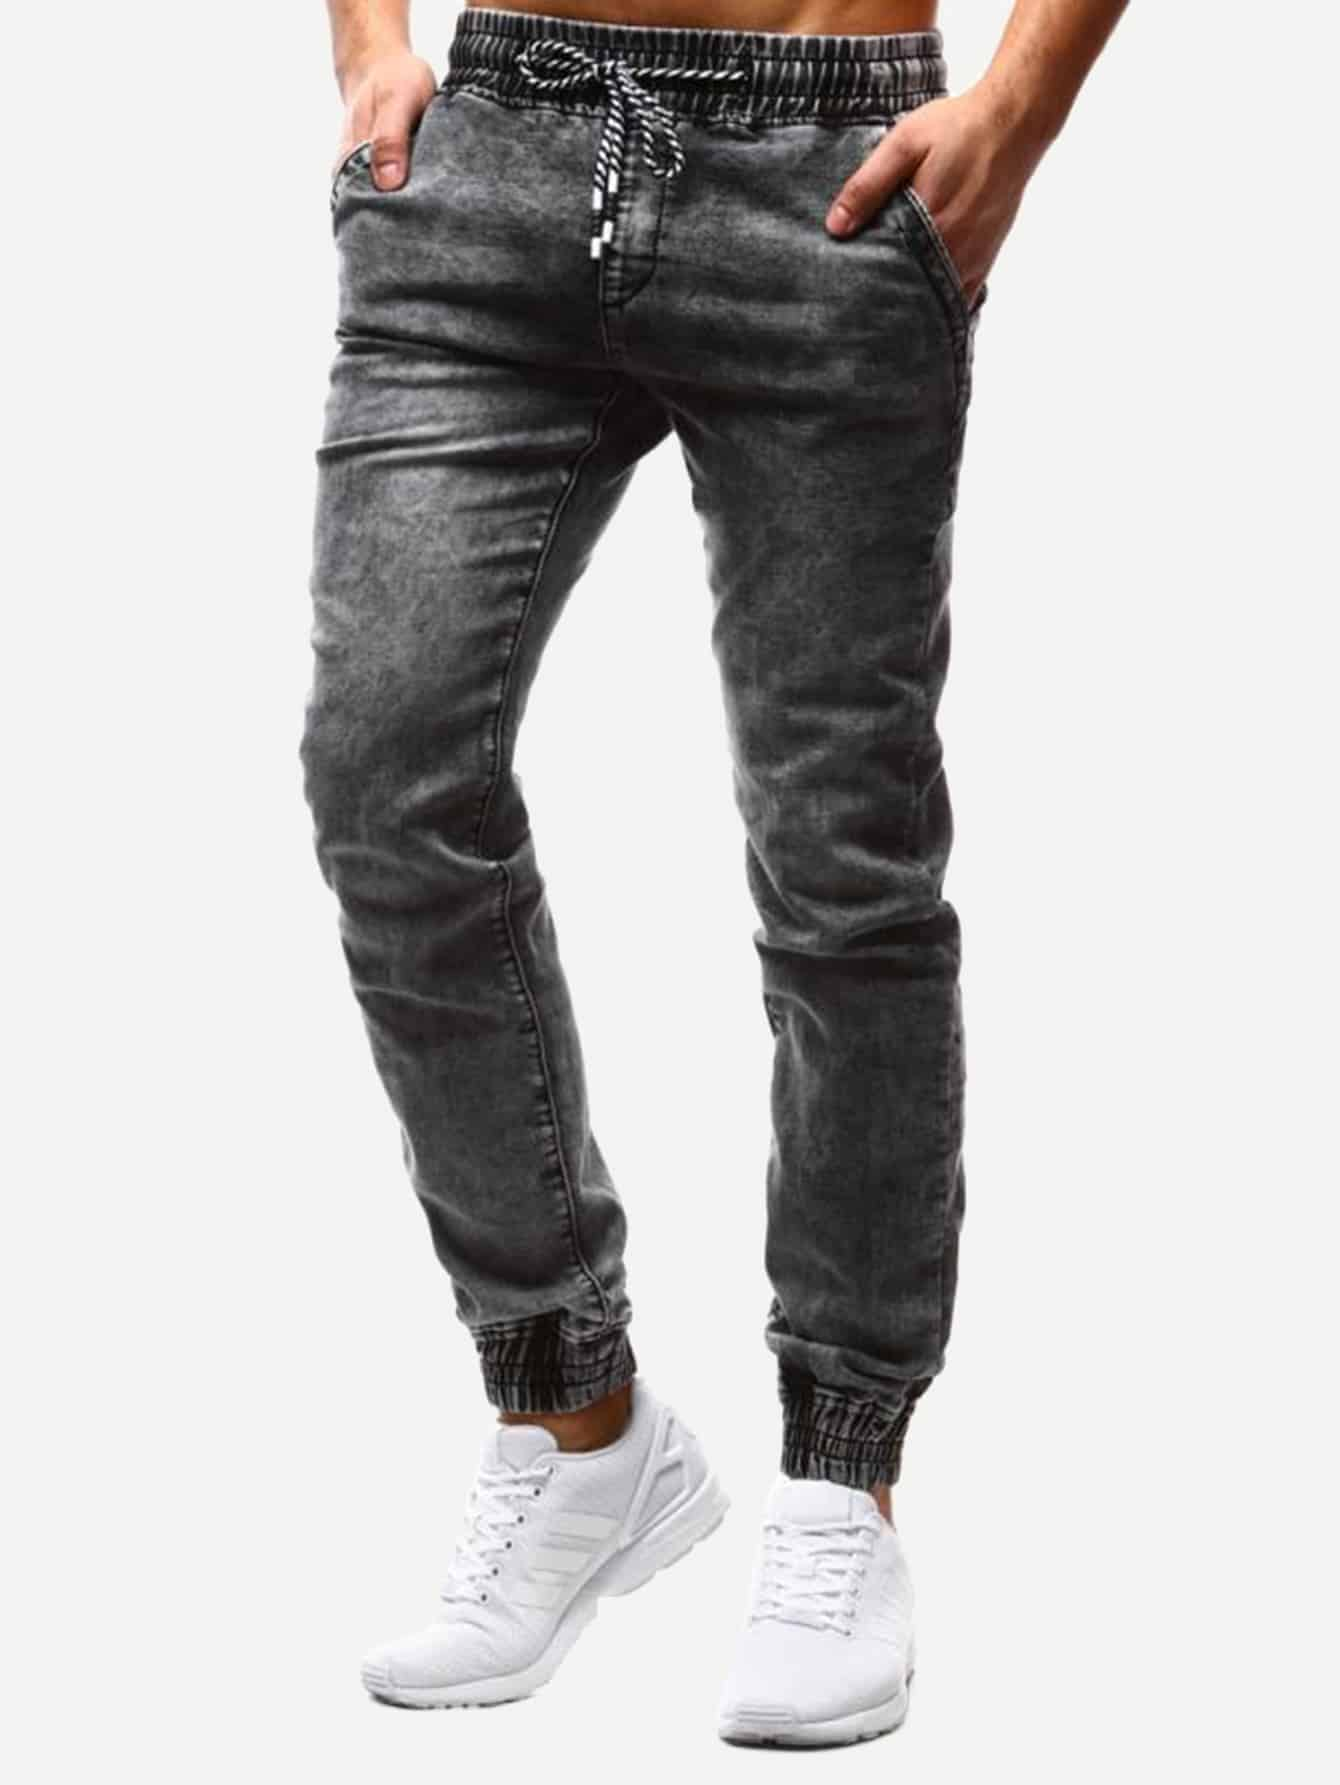 Men Drawstring Waist Solid Jeans Men Drawstring Waist Solid Jeans